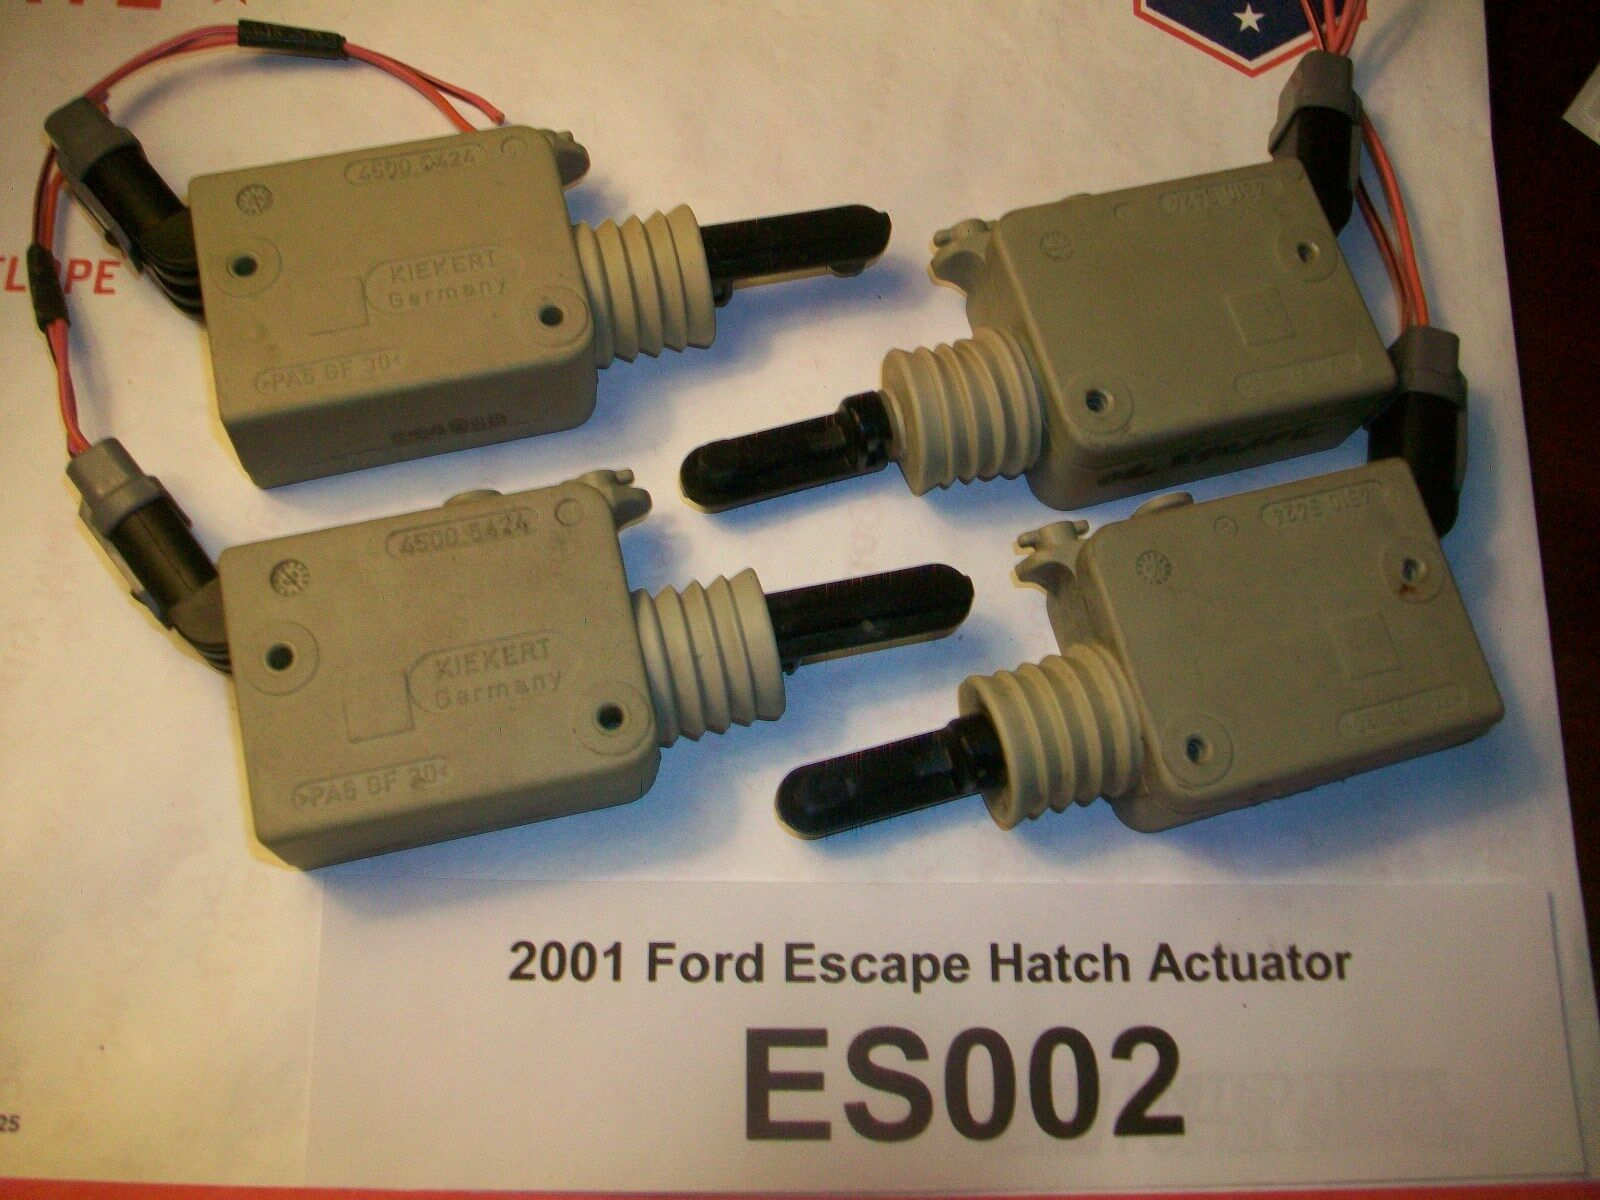 Used Ford Escape Trunk Lids And Related Parts For Sale Rover 25 Tailgate Wiring Diagram Tested 2001 Liftgate Lock Actuator Hatch Oem Es002